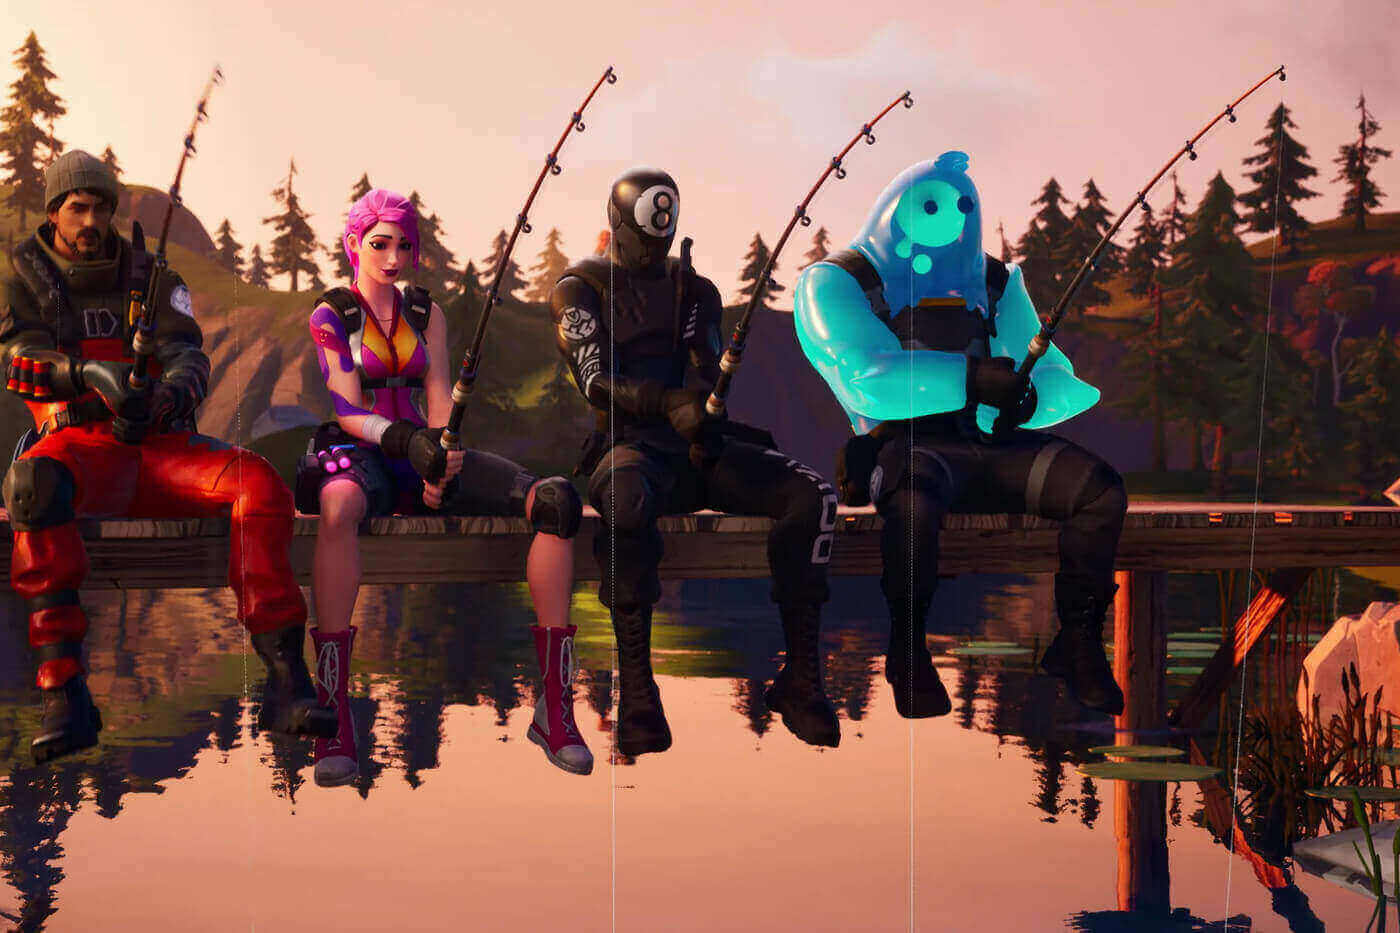 Fortnite Season 4 Fishing Guide Fortnite season 4 is creeping ever closer, and before you know it, we'll be leaving the current season's watery depths for something new. fortnite season 4 fishing guide